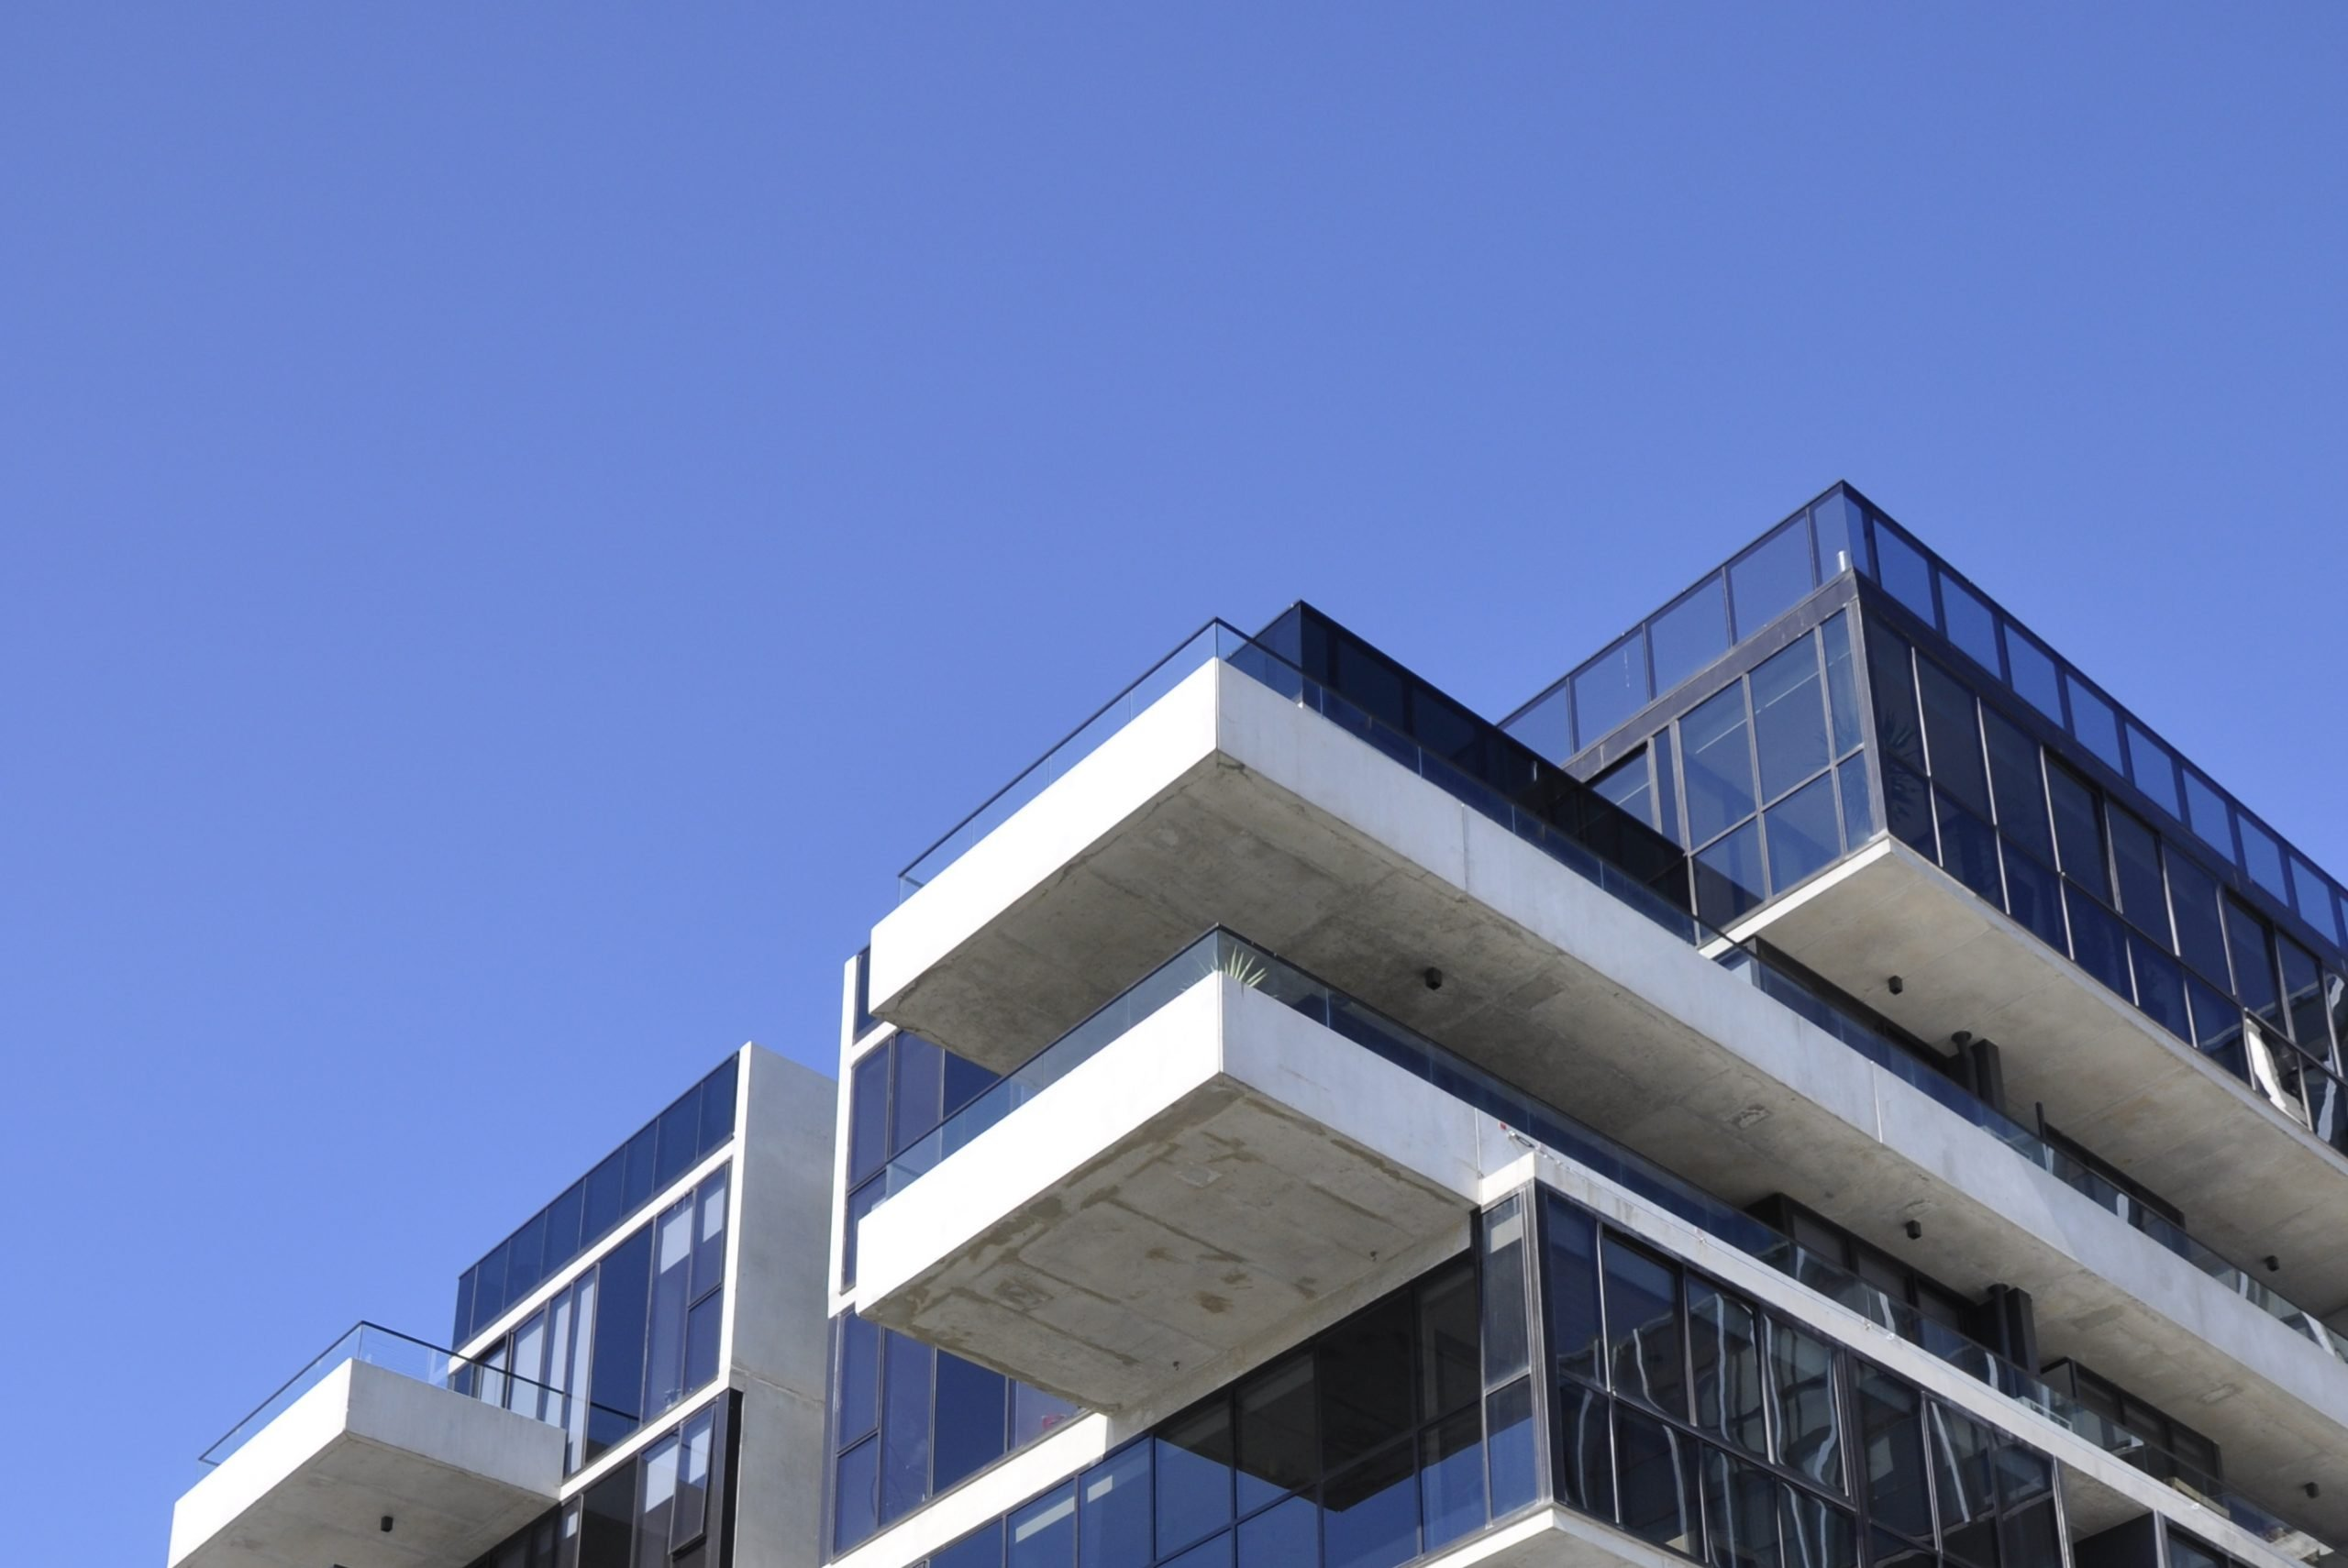 Defects in Residential Strata Buildings? Take Care not to Overlook the Most Prevalent!